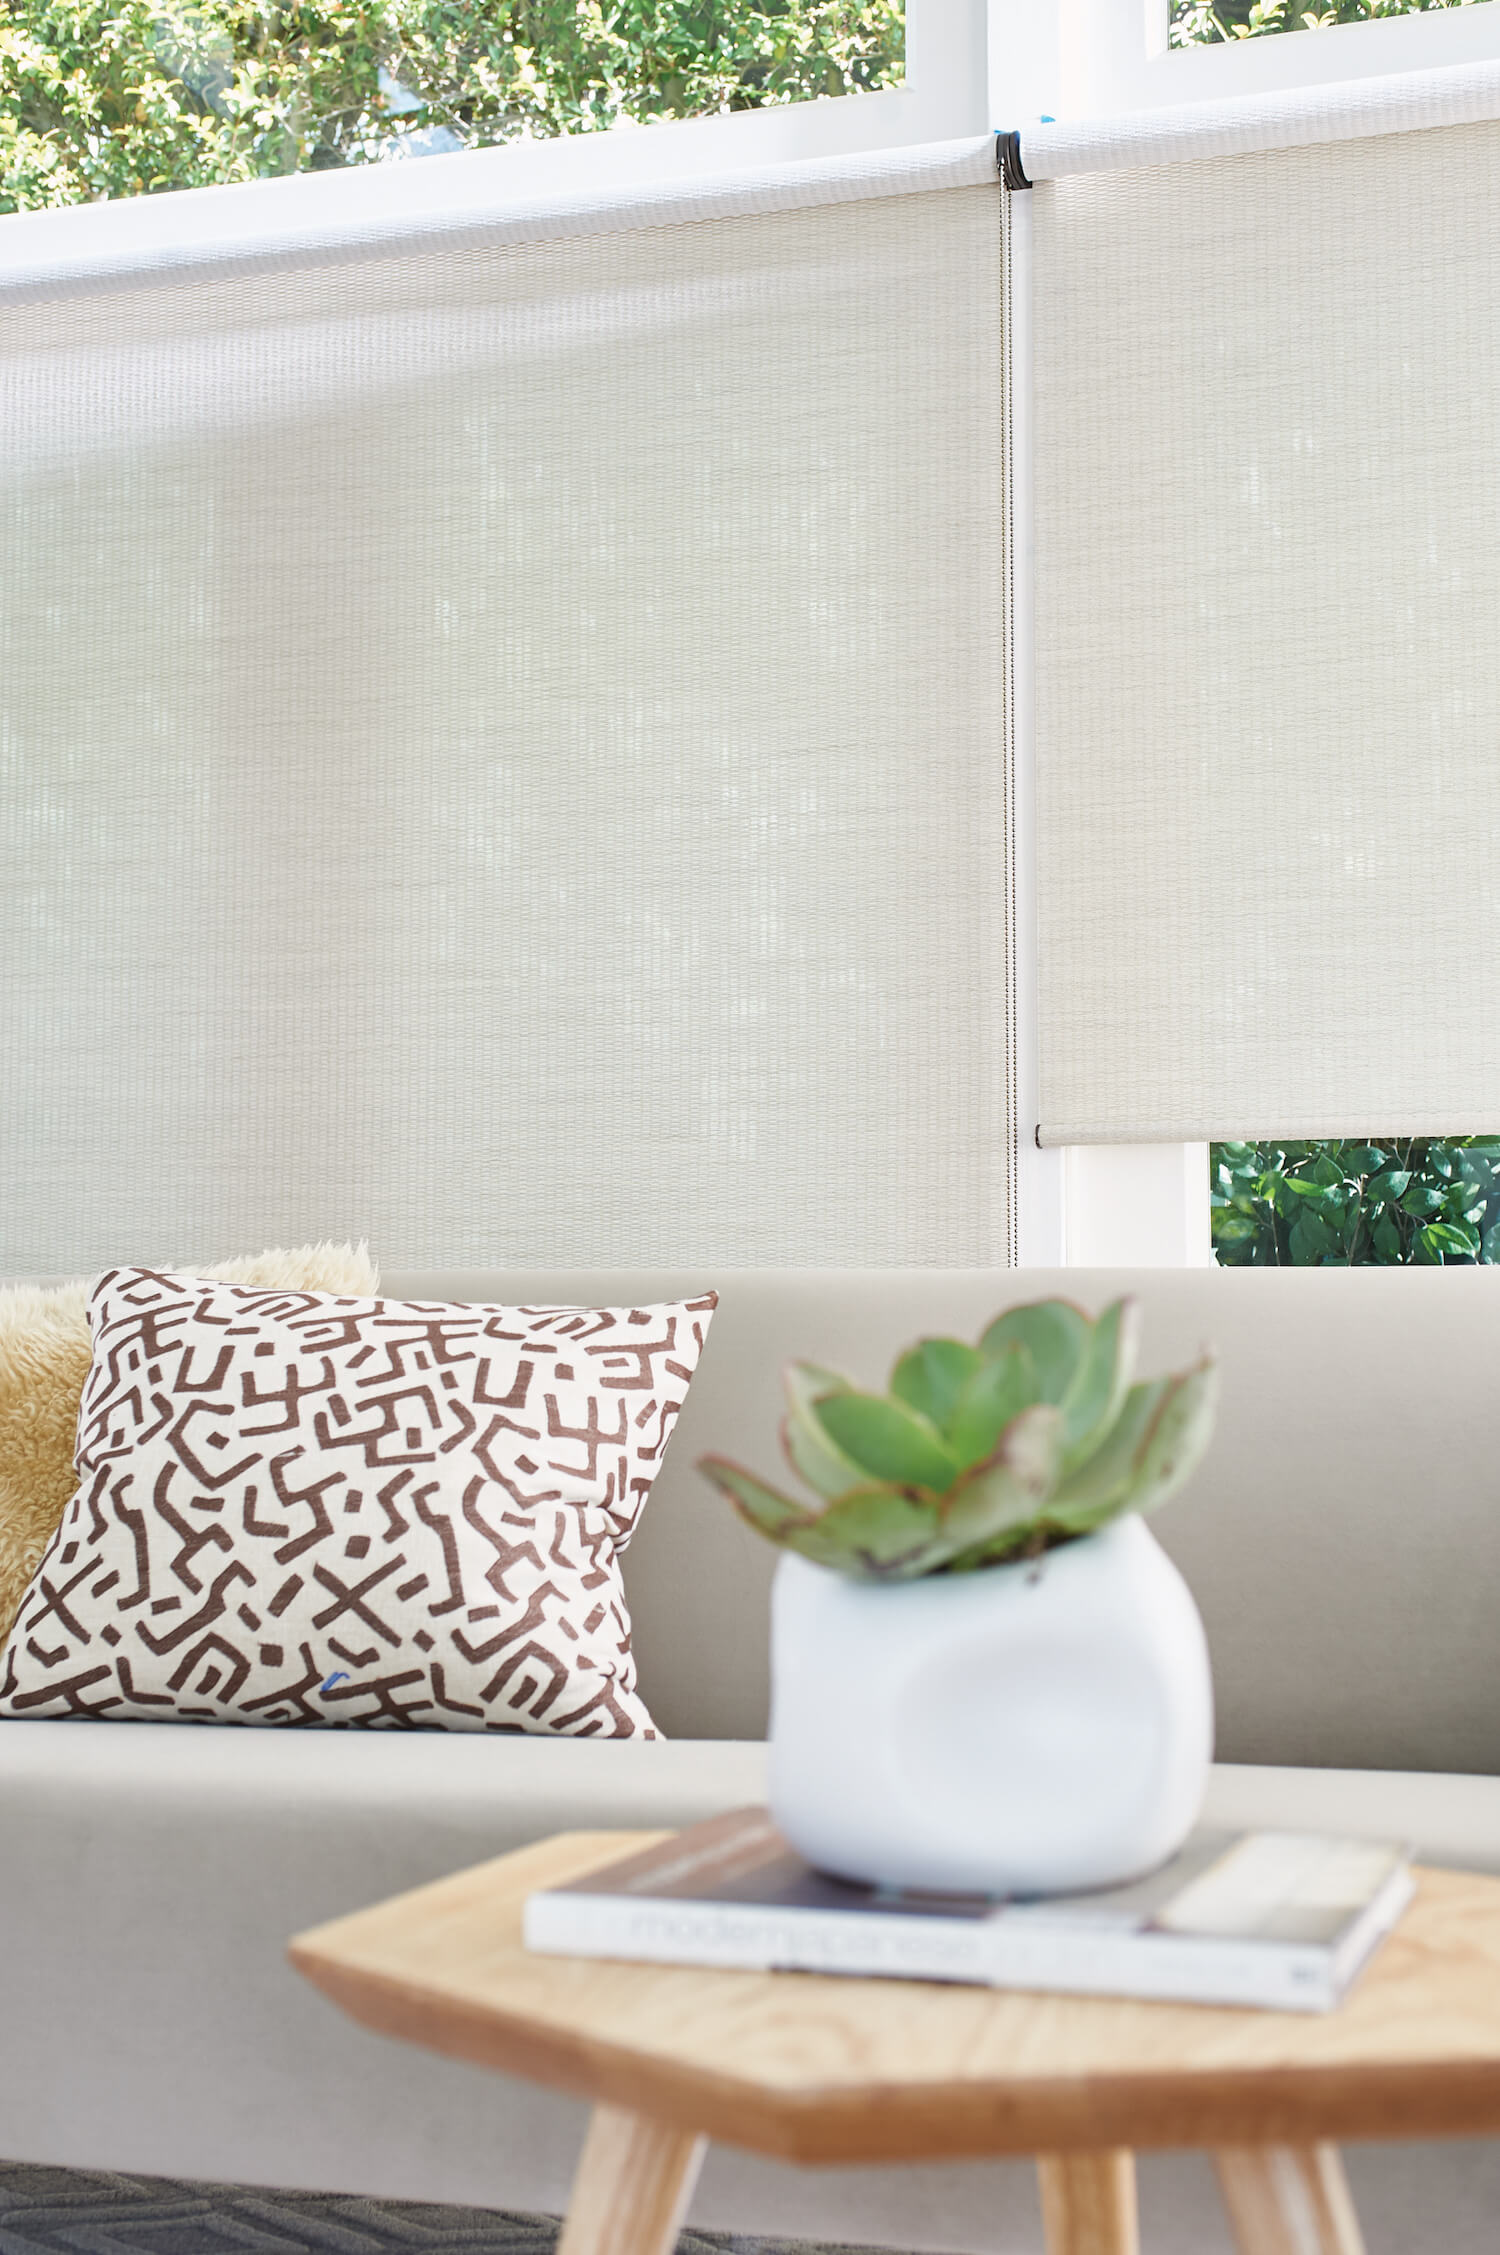 close up of off-white Alustra Woven Textures behind sofa